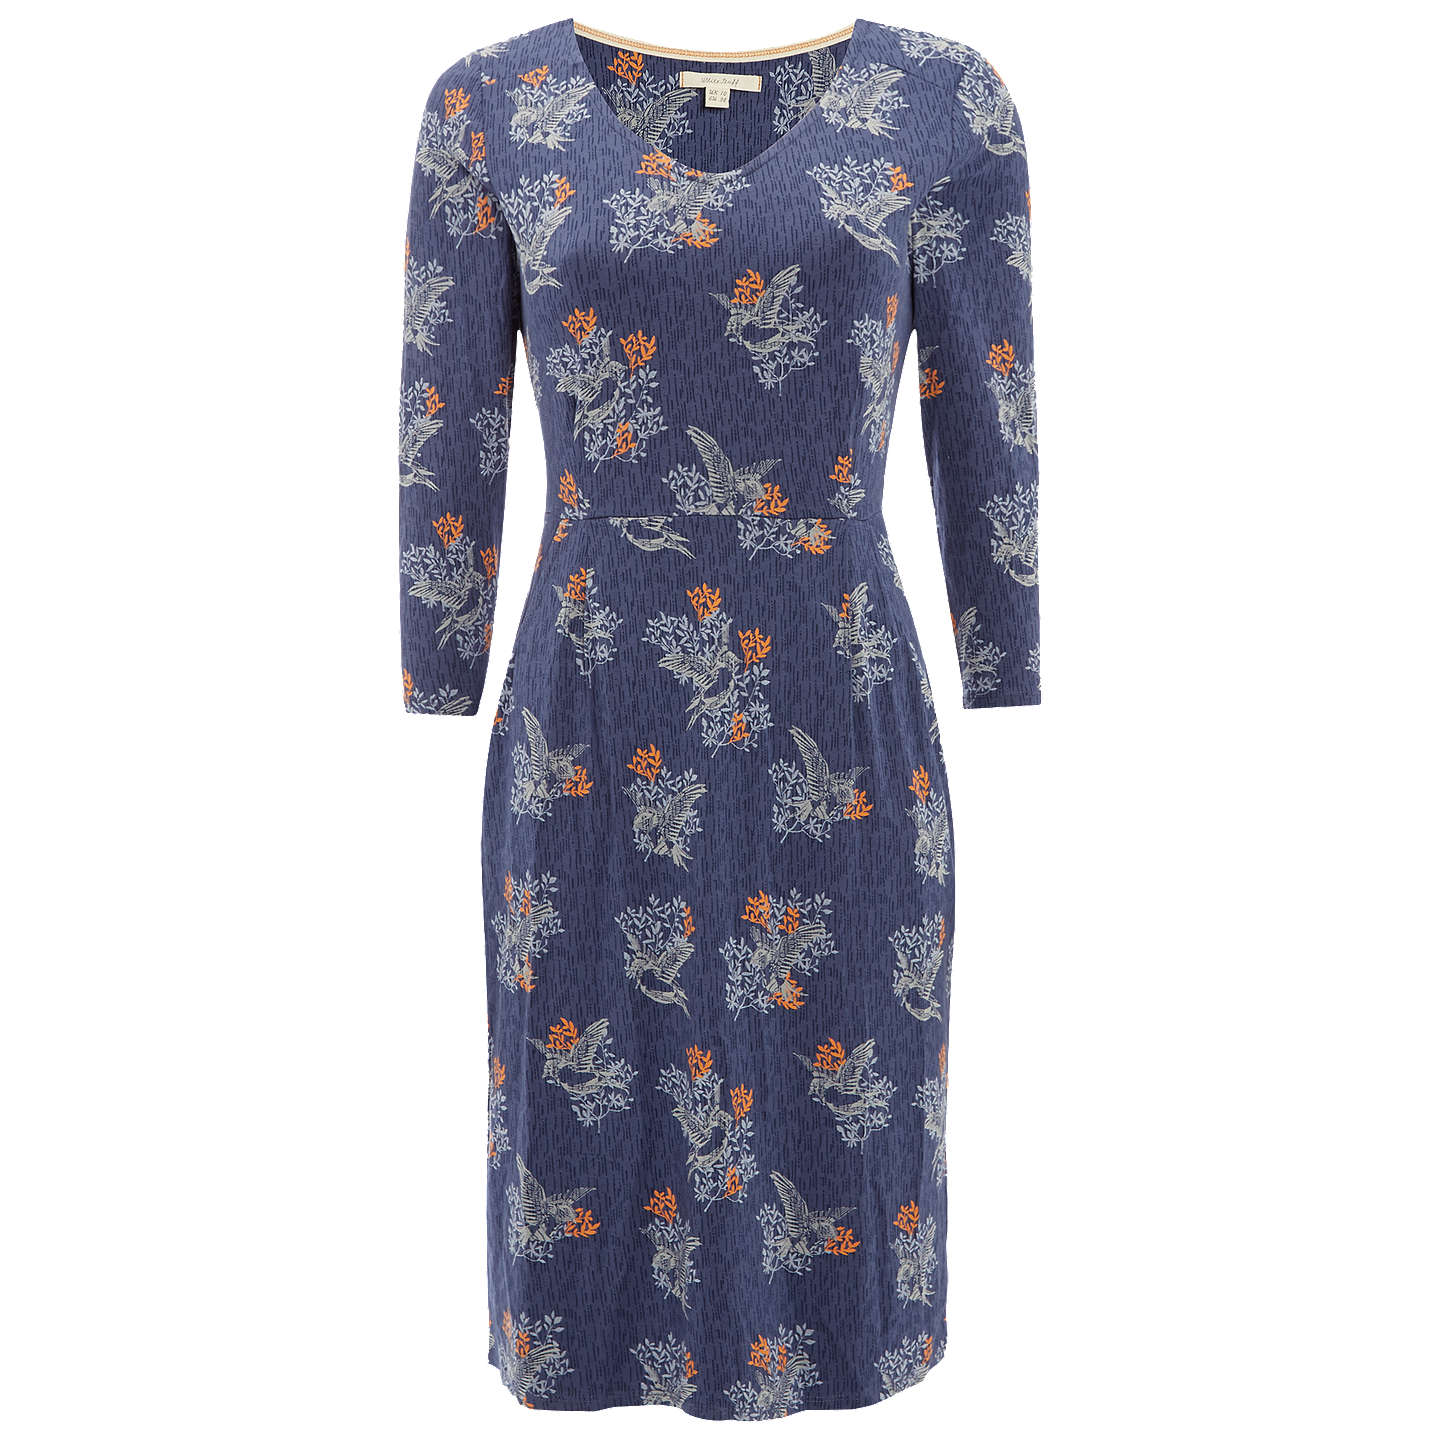 BuyWhite Stuff Tess Jersey Dress, Brooklyn Blue Print, 6 Online at johnlewis.com